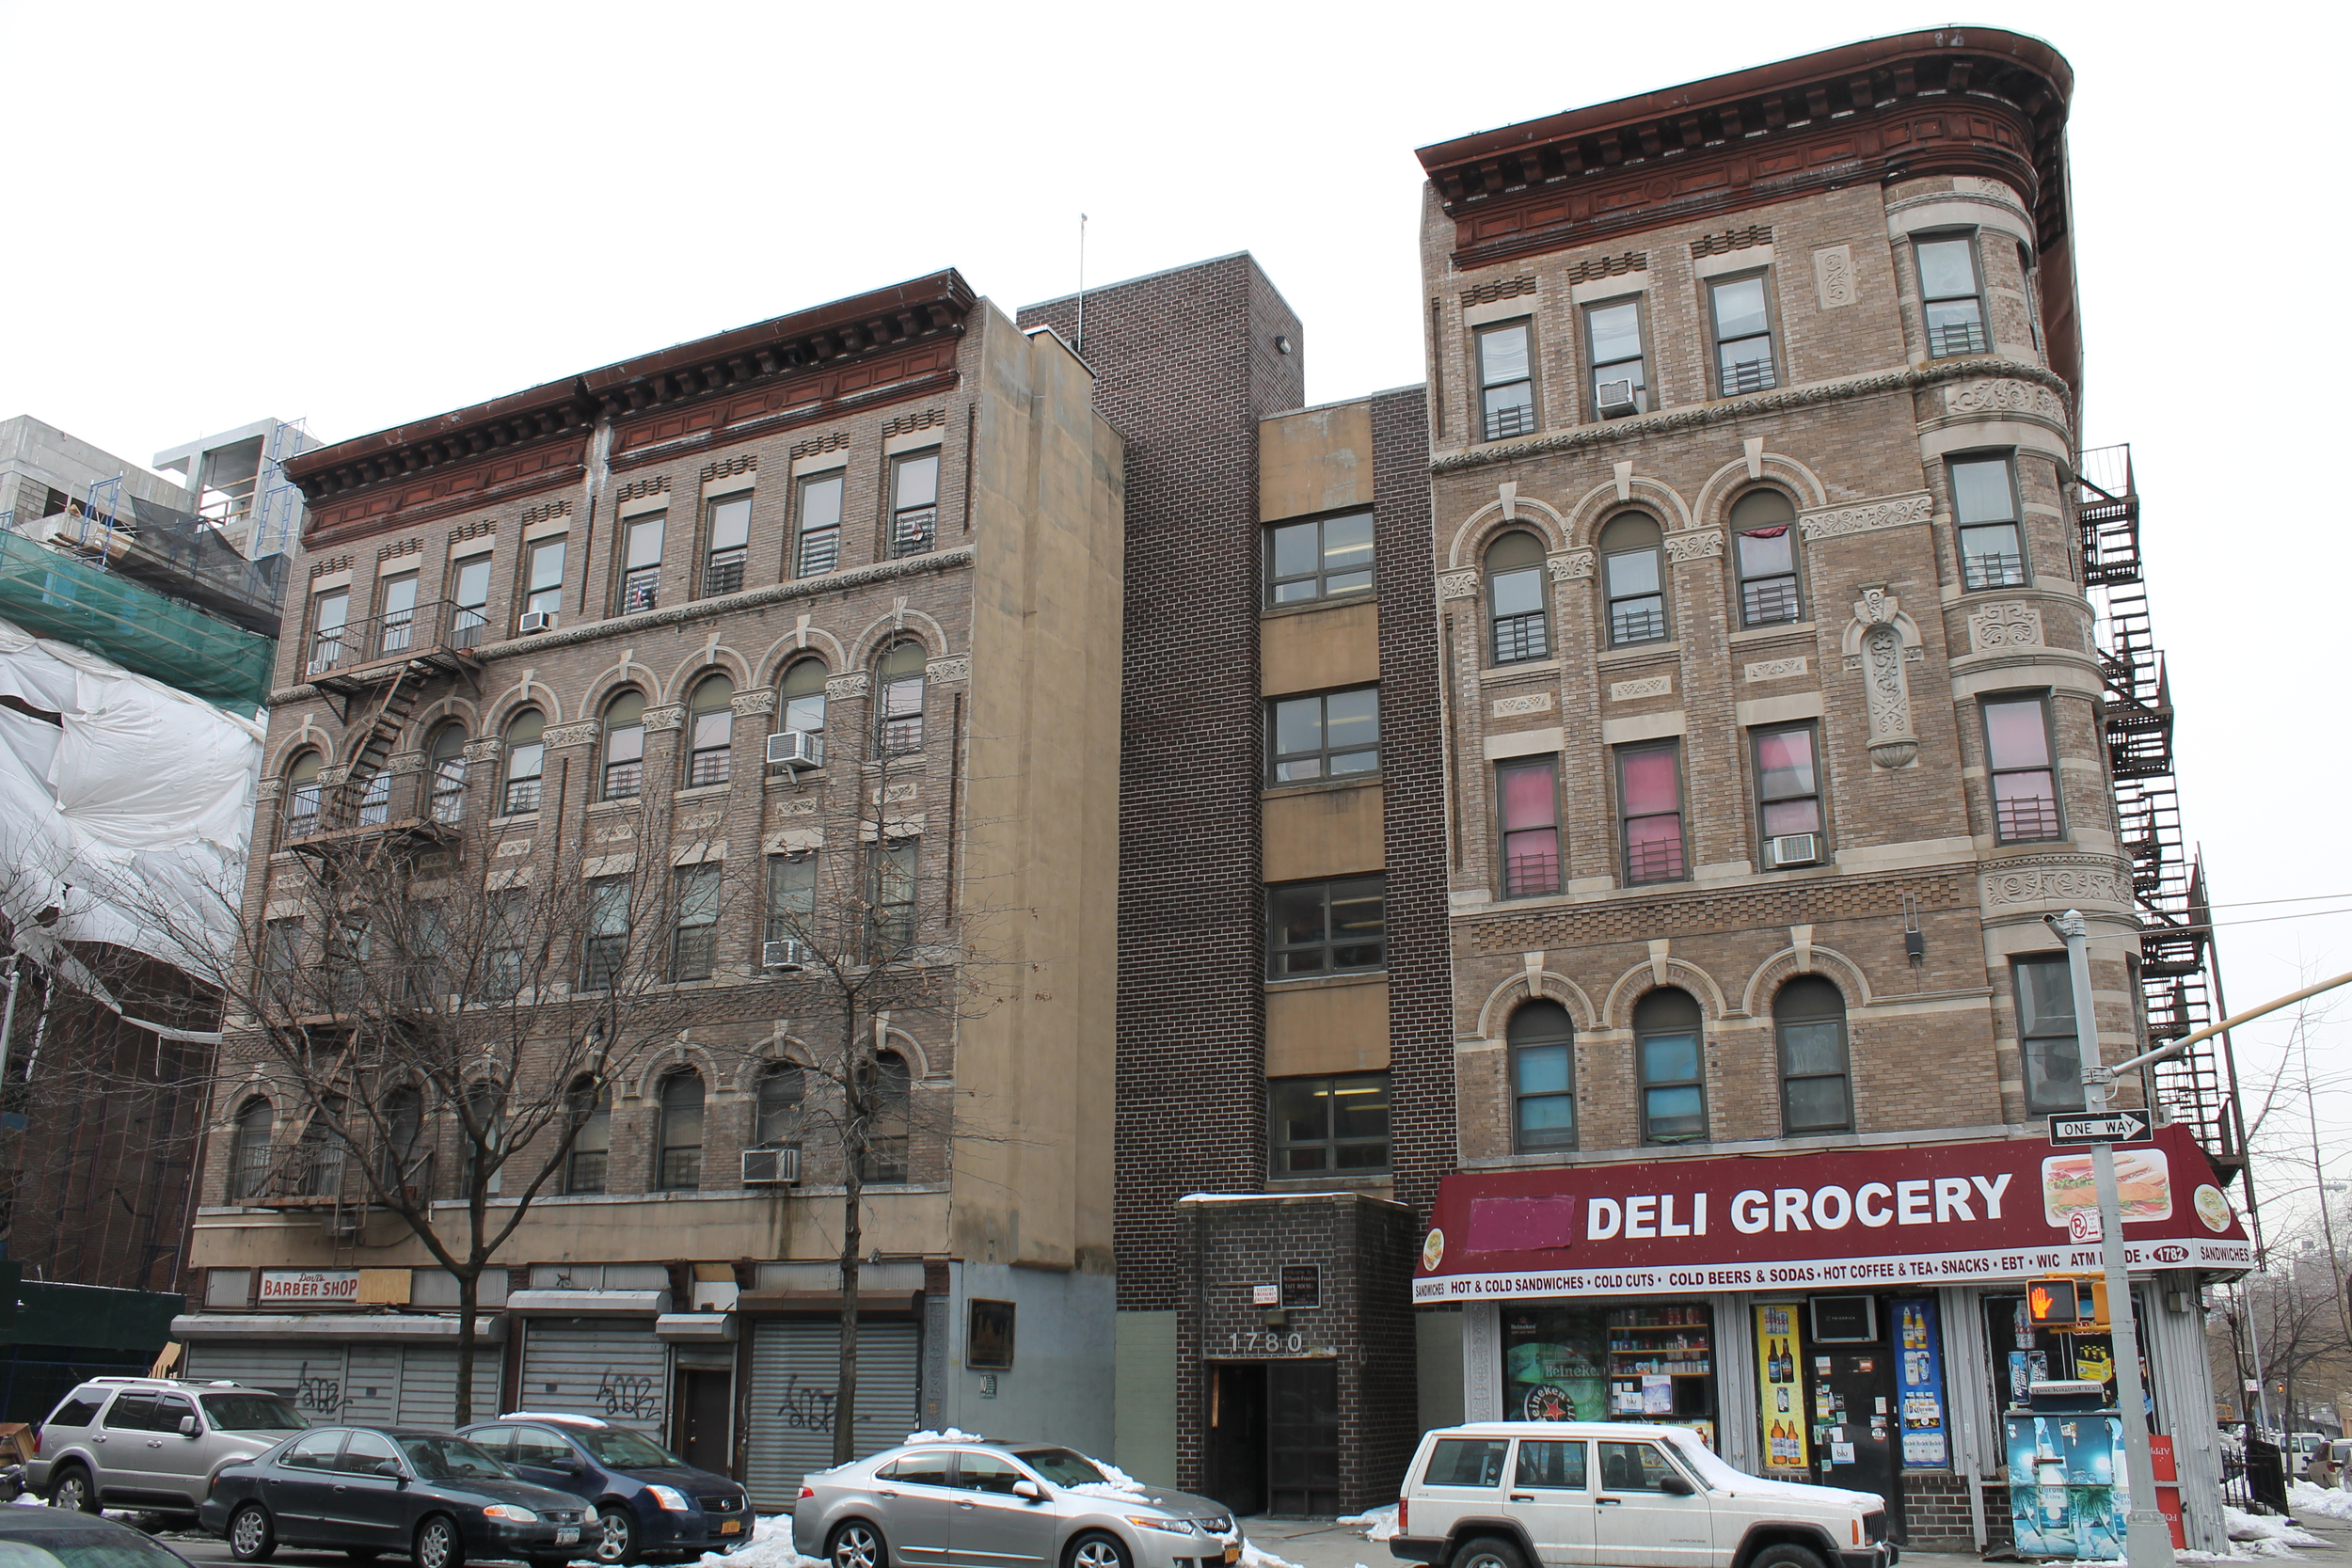 1780 Madison Avenue, at left, whose ground-floor retail spaces have been vacated, and 1782 Madison Avenue, at right, as seen on March 3, 2015. The buildings had recently been refurbished by NYCHA. Source : Louis Flores